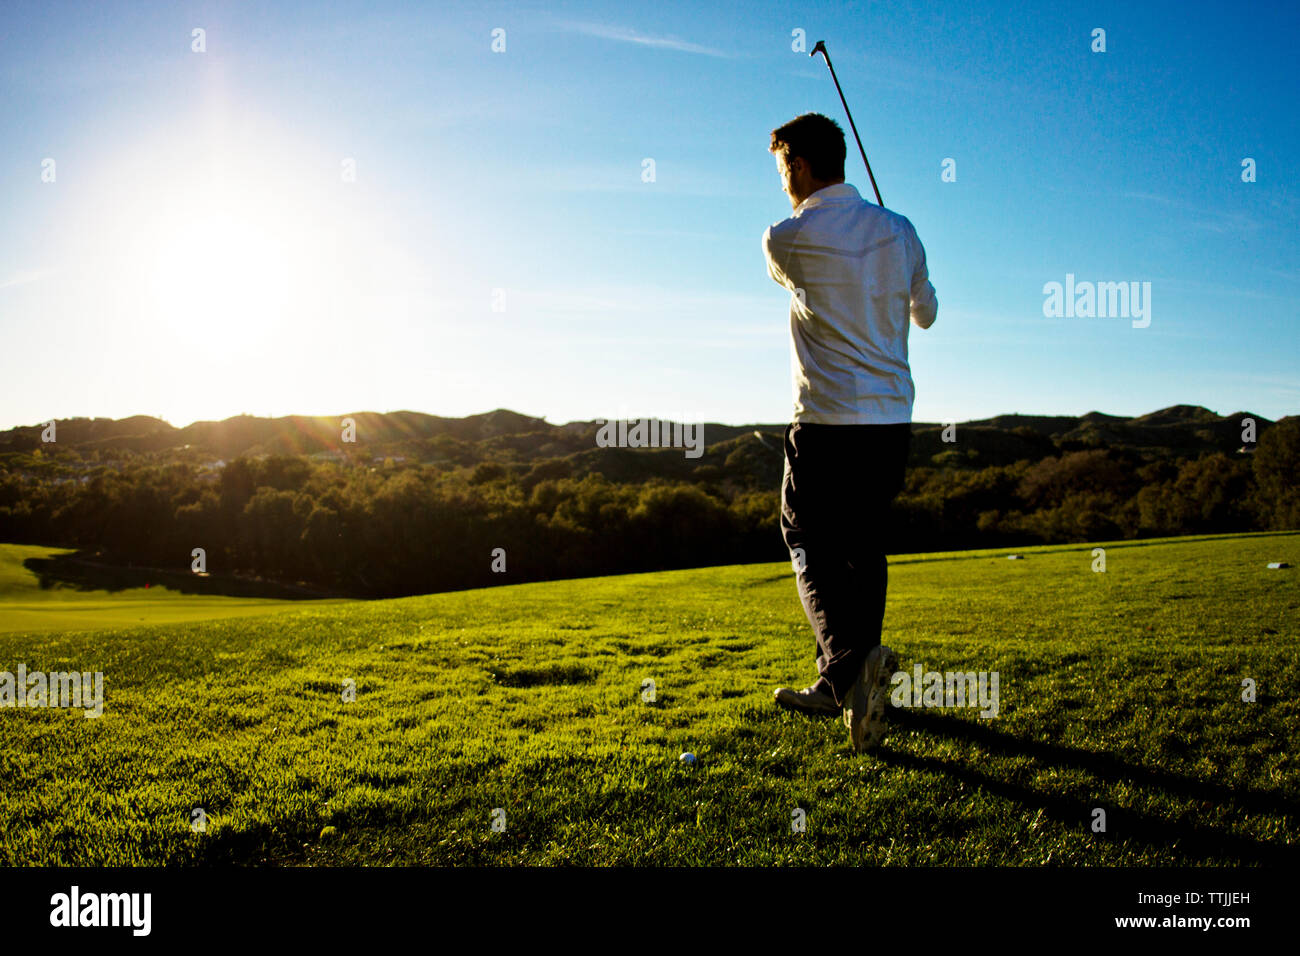 Rear view of man playing golf against clear sky Stock Photo